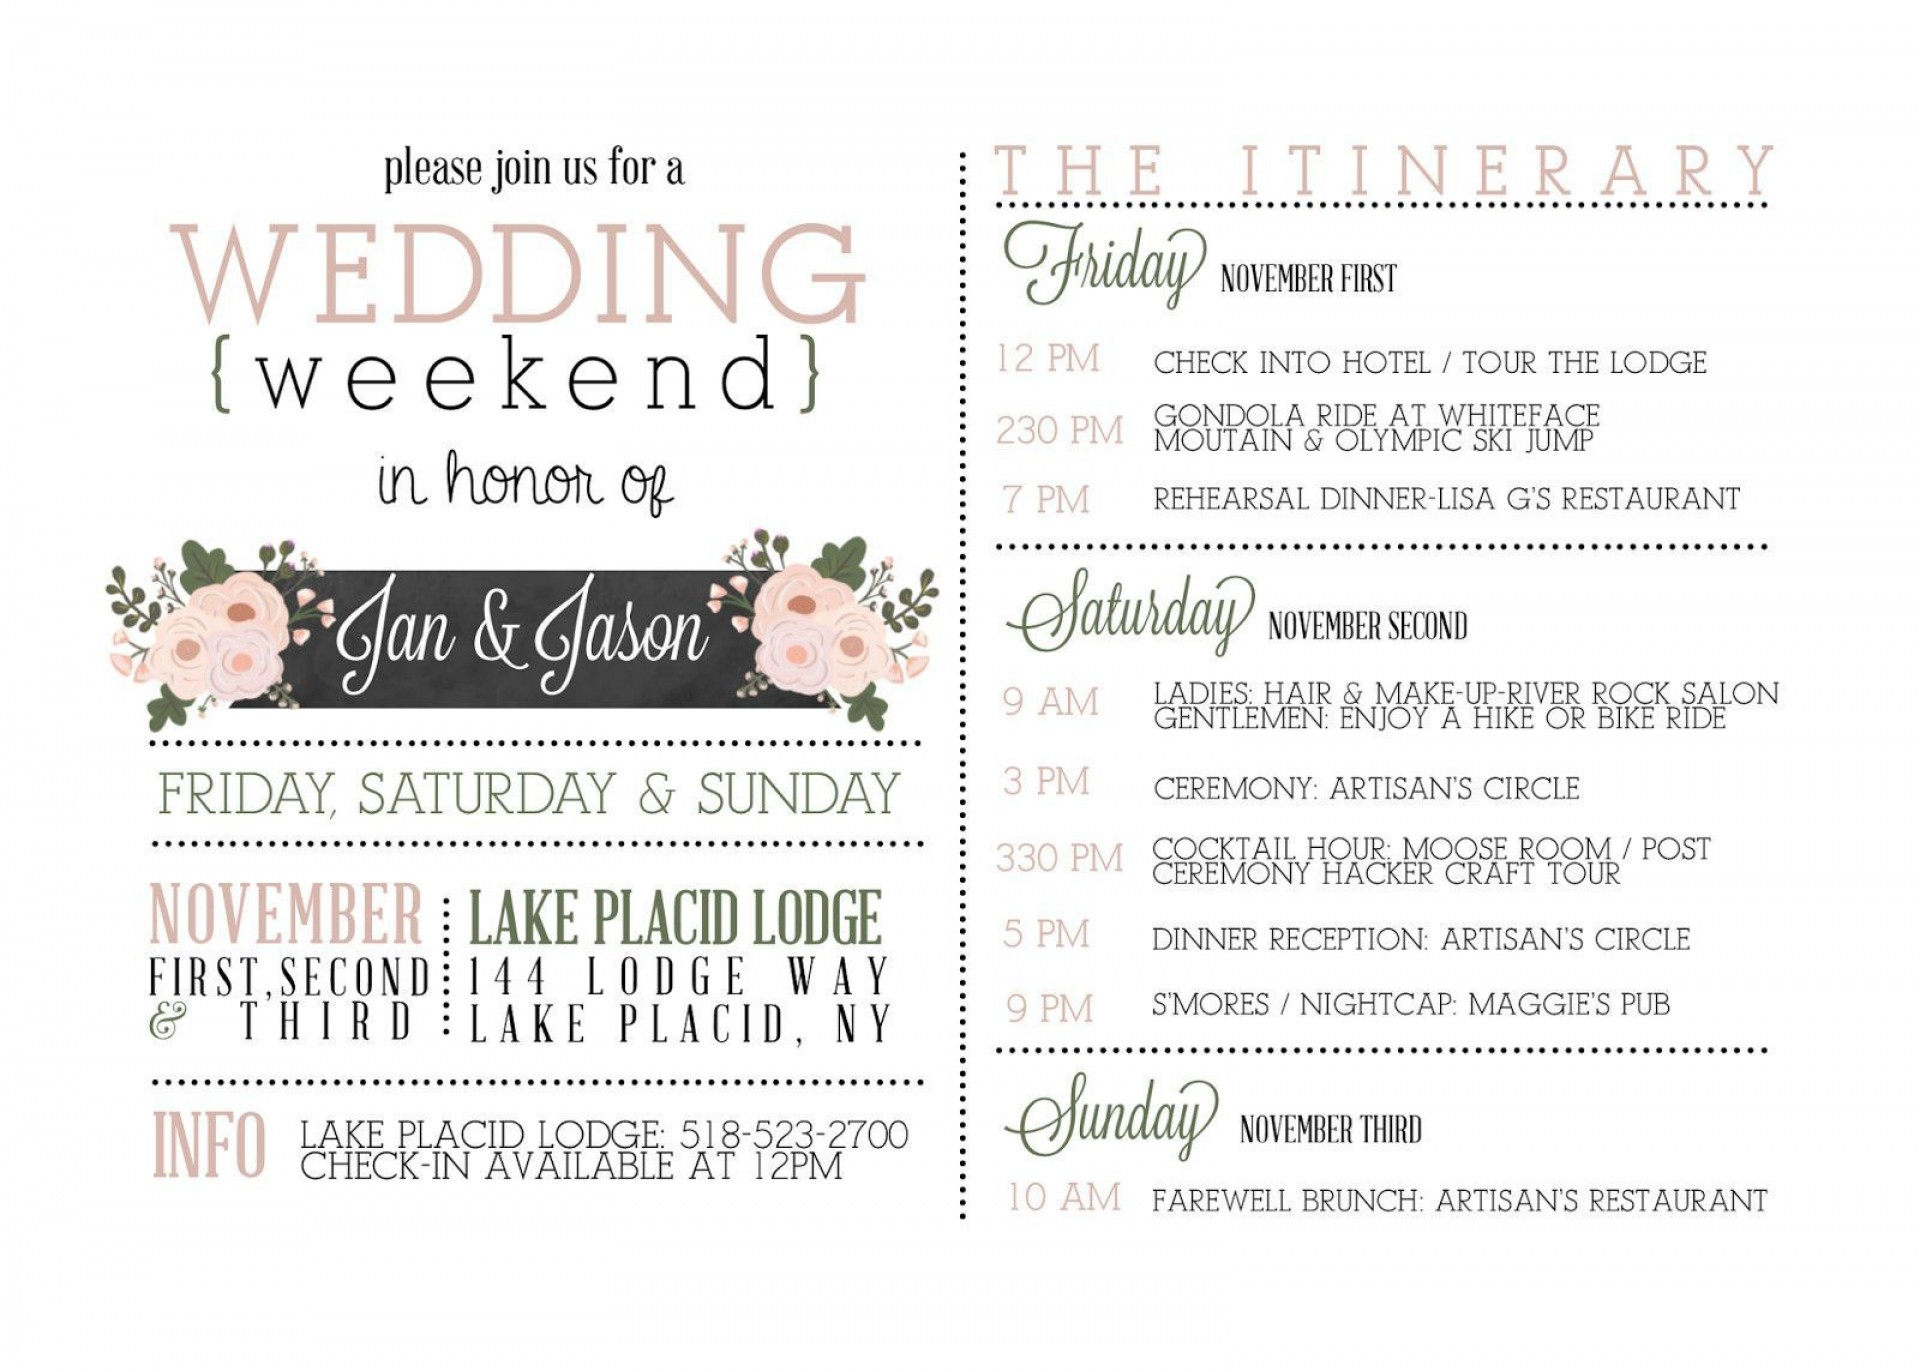 000 Beautiful Wedding Weekend Itinerary Template High Def  Day Word Reception Timeline Excel1920